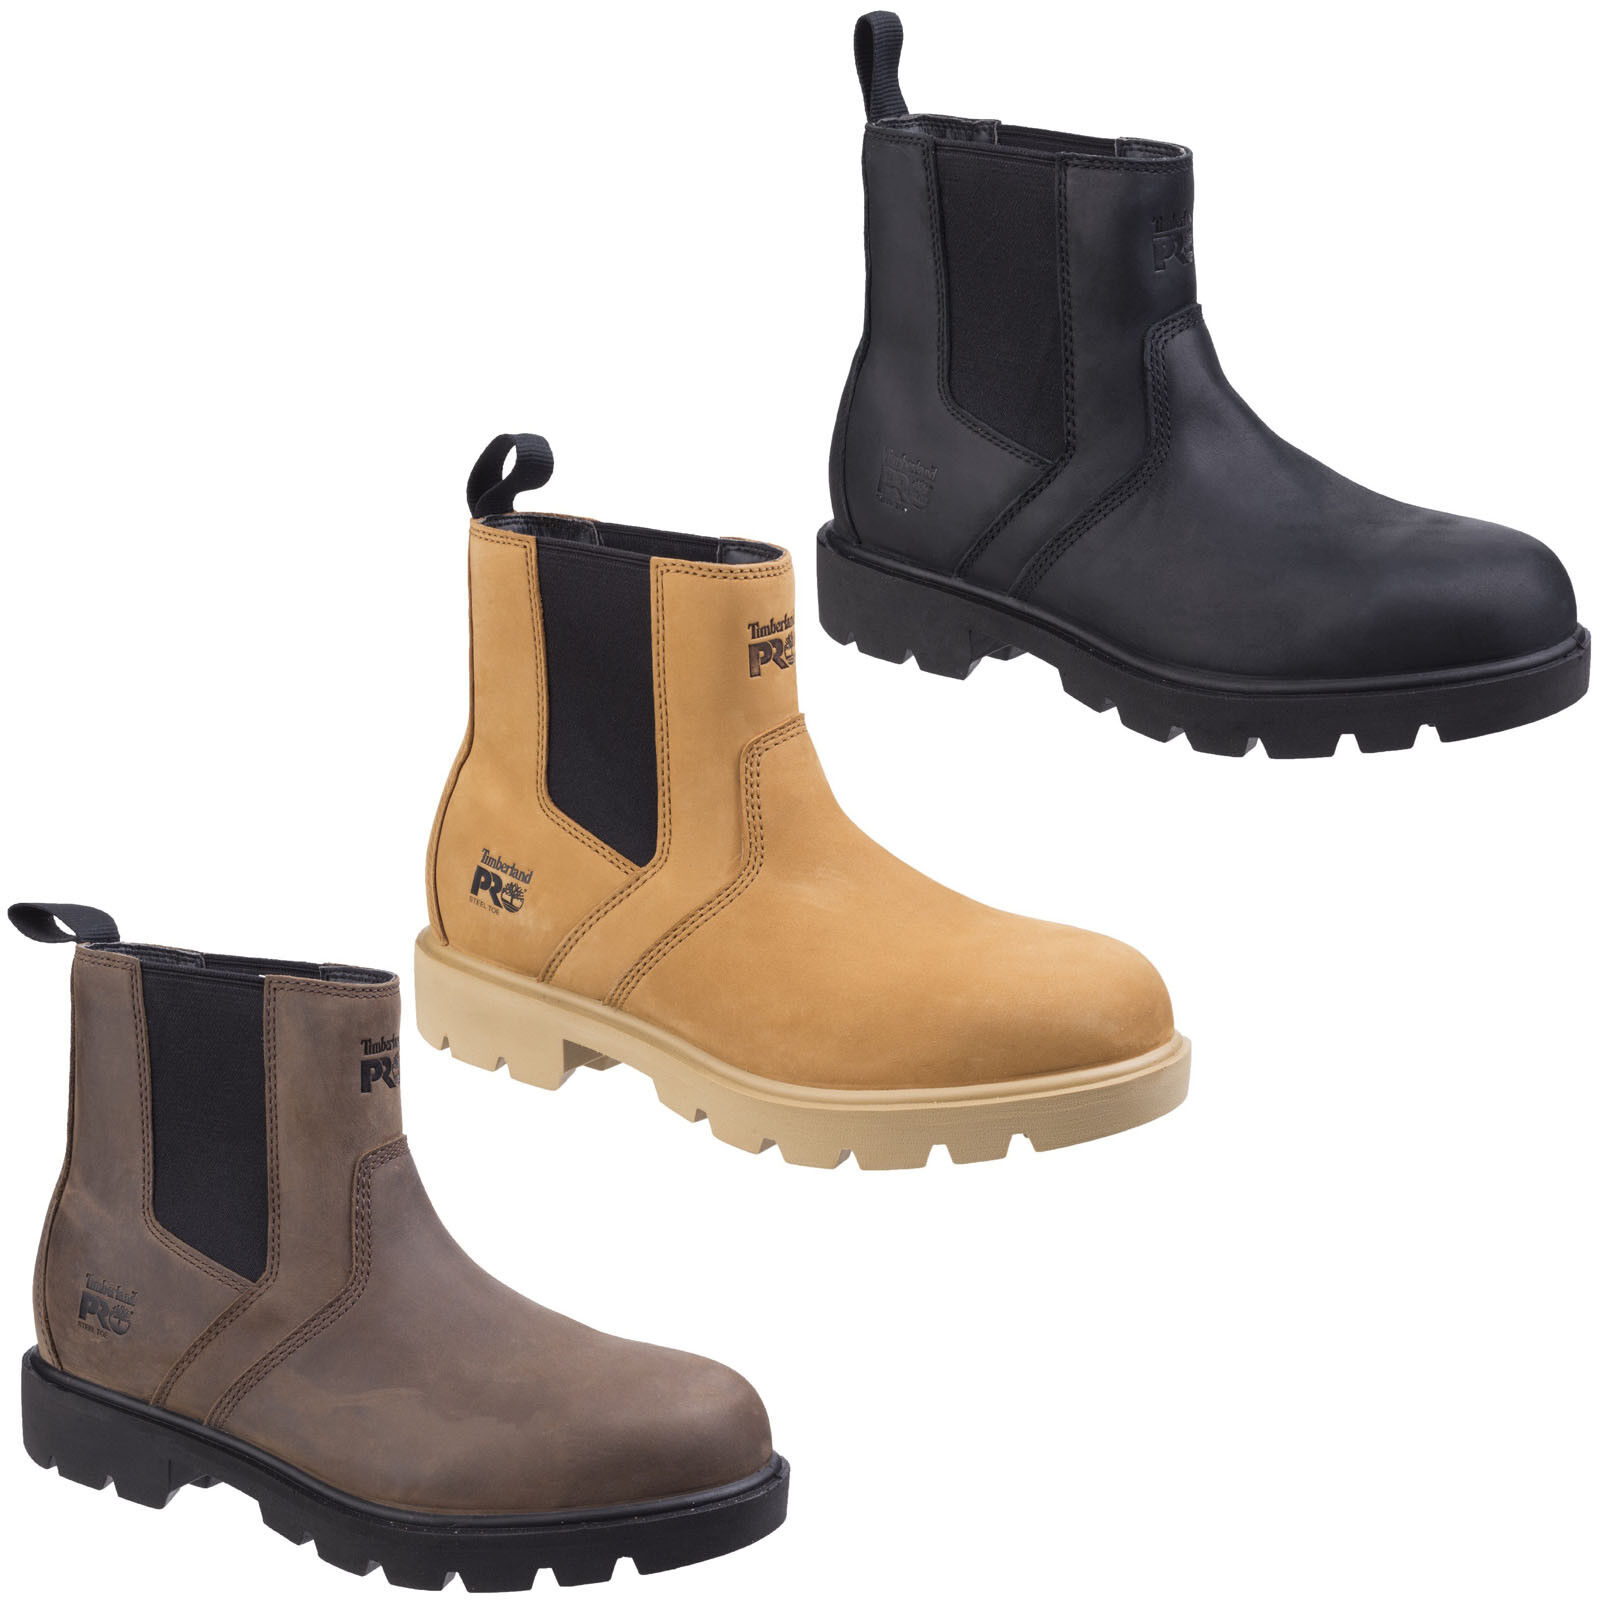 Timberland Pro 26135 SawHorse Dealer Safety Boot Water Resistant Honey Size 9